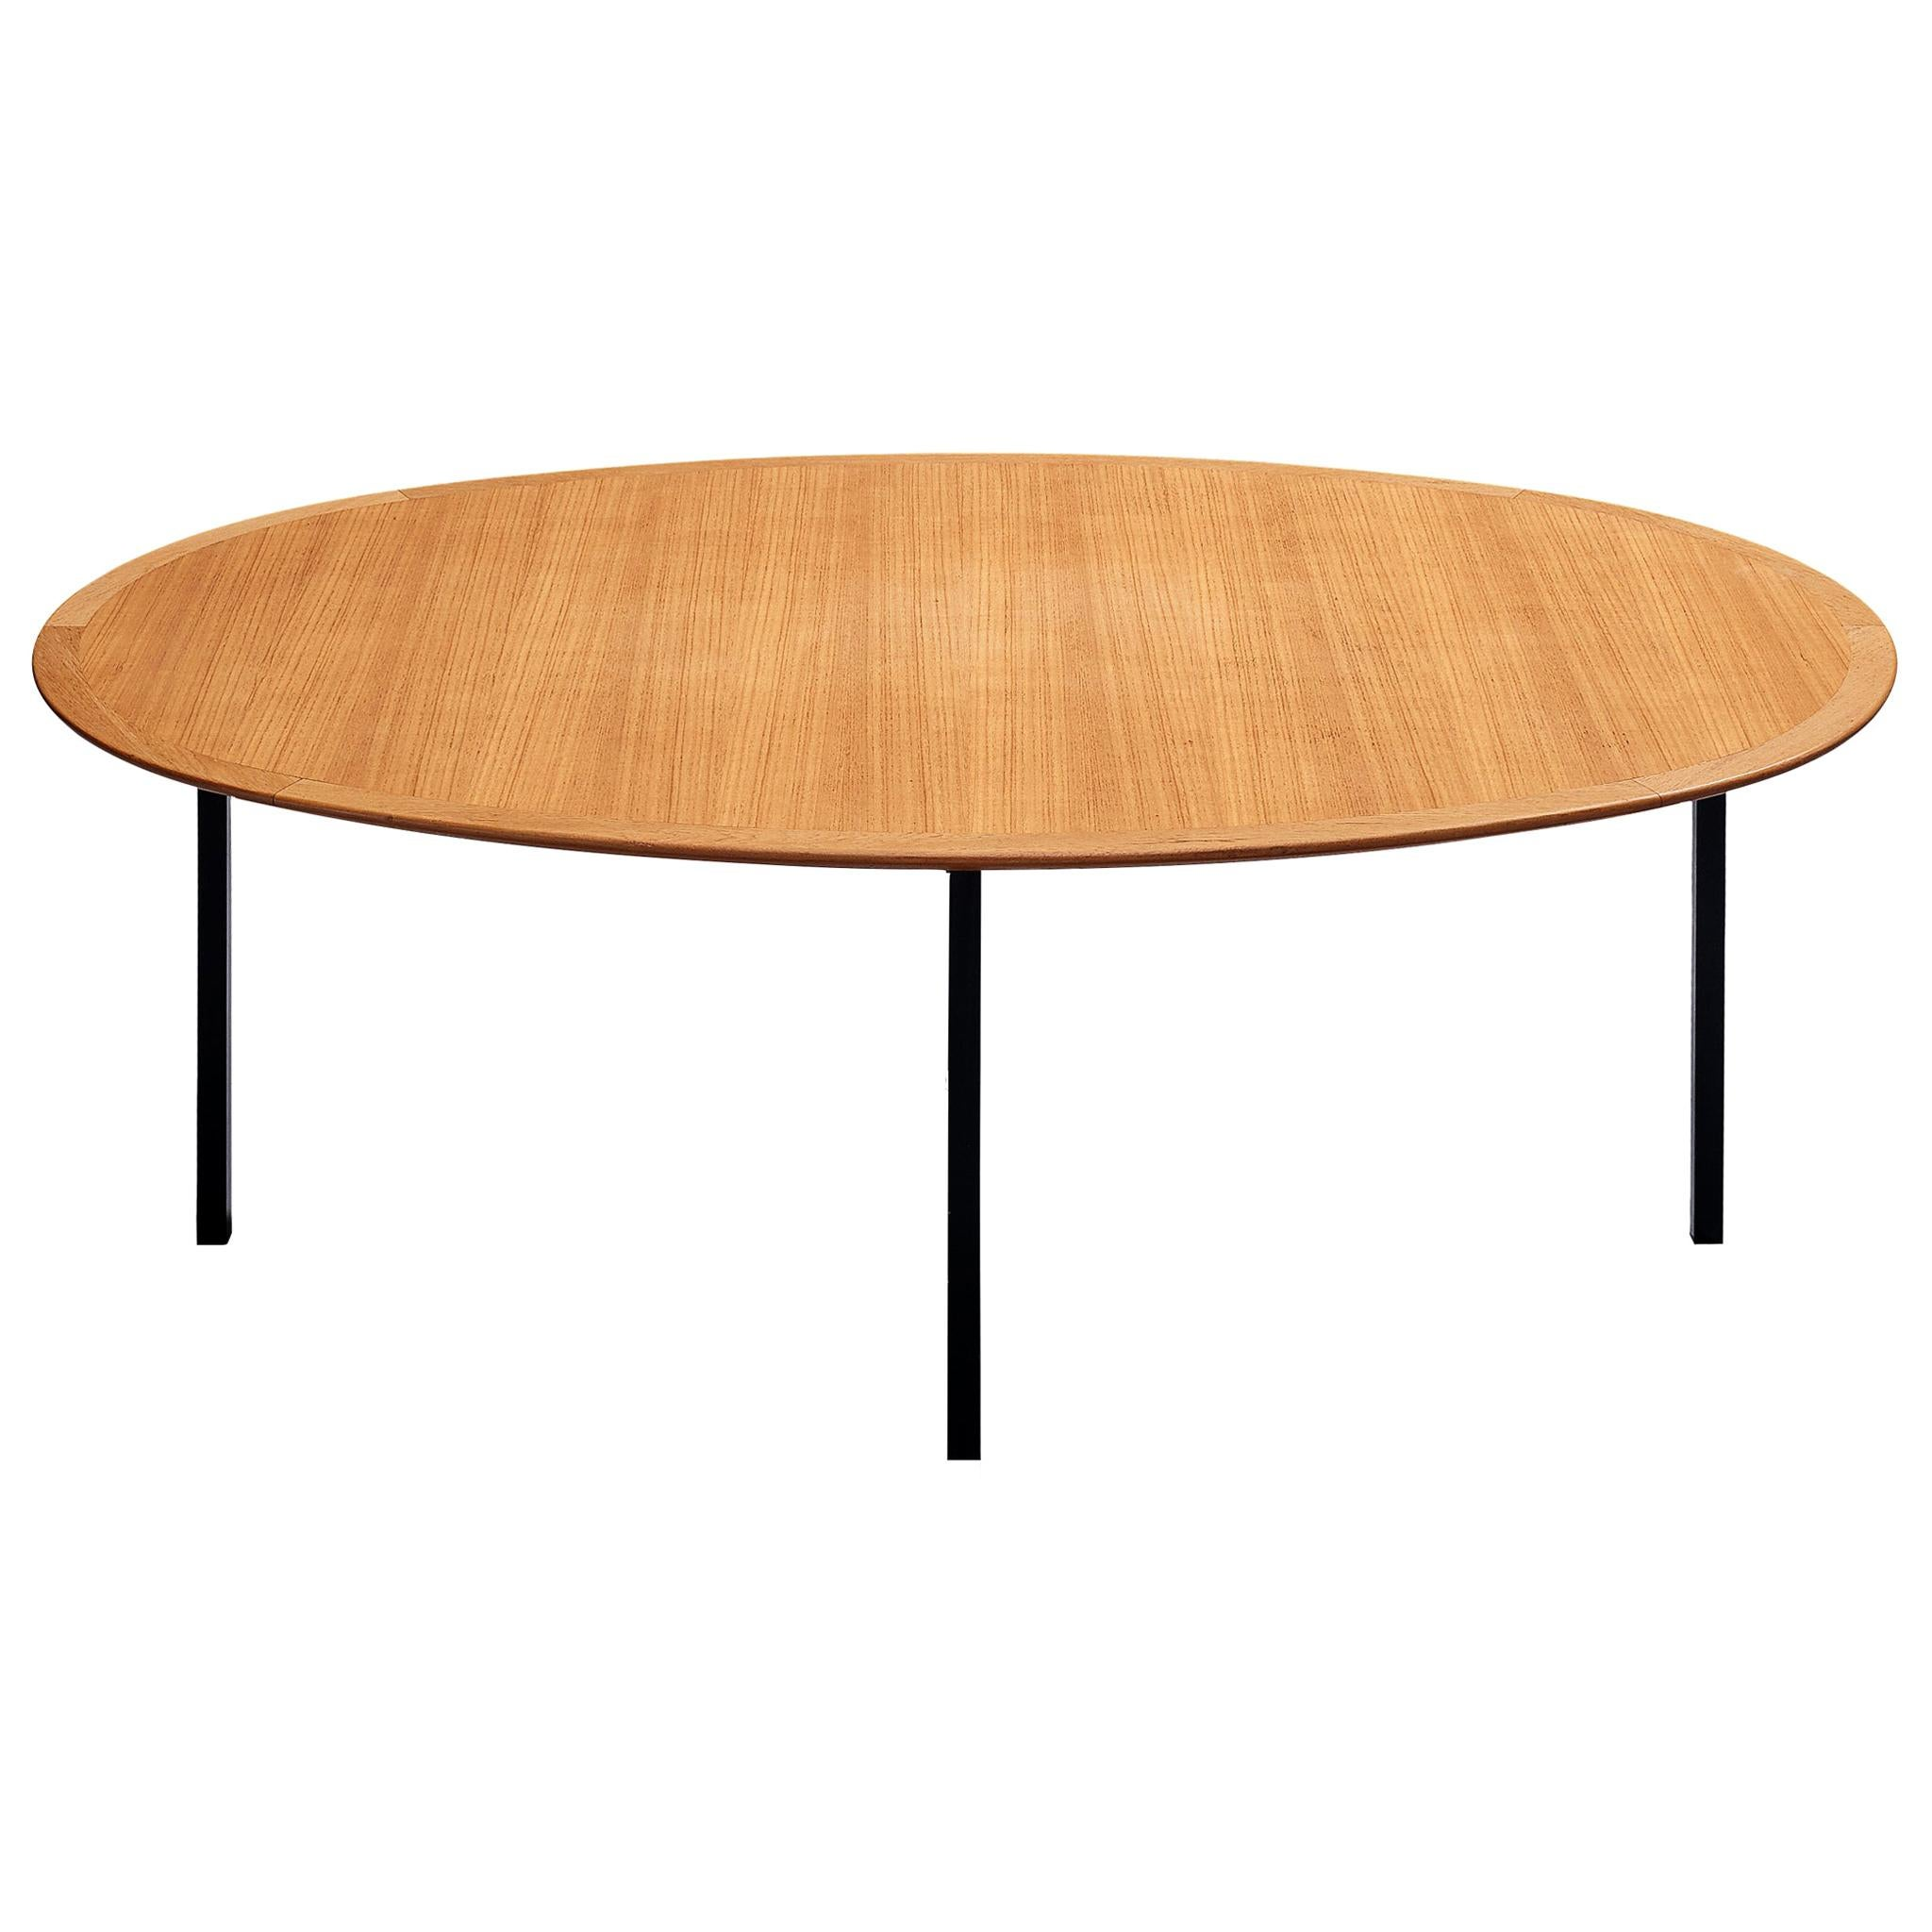 Florence Knoll International Oval Dining Table in Teak and Metal